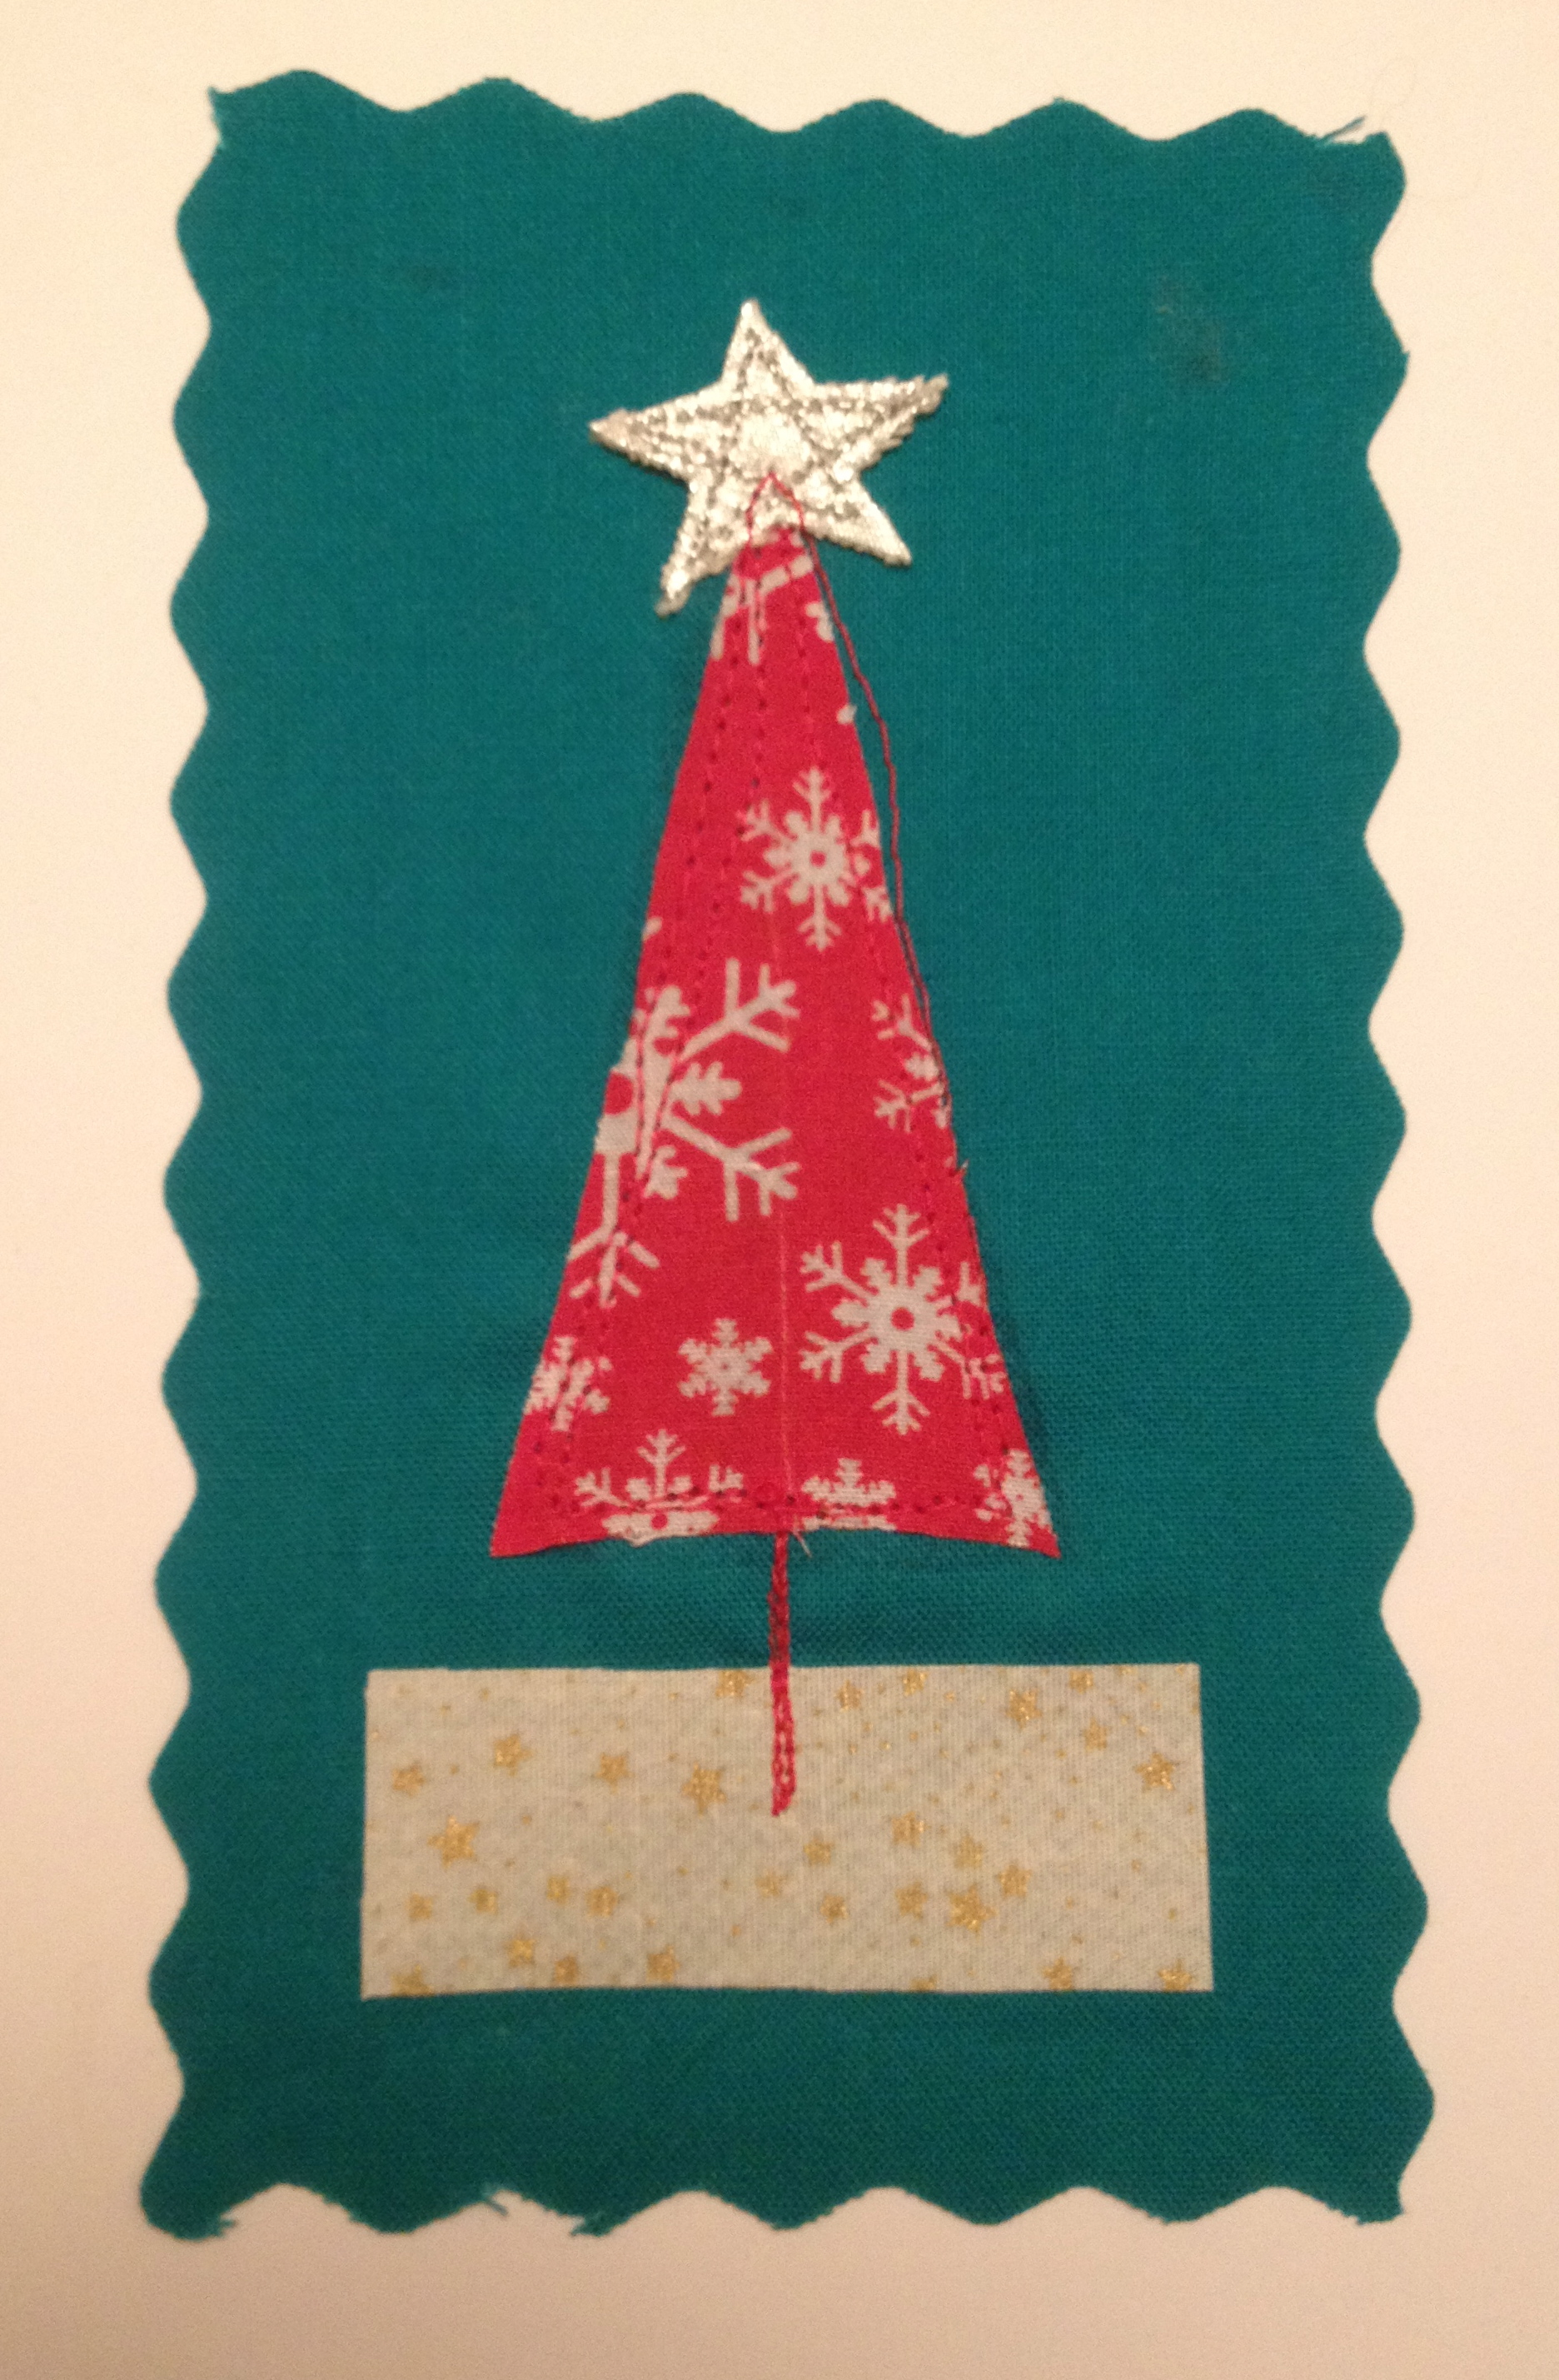 Handmade Stitched Christmas Card - £2.50 each or 5 for £10 + p&p